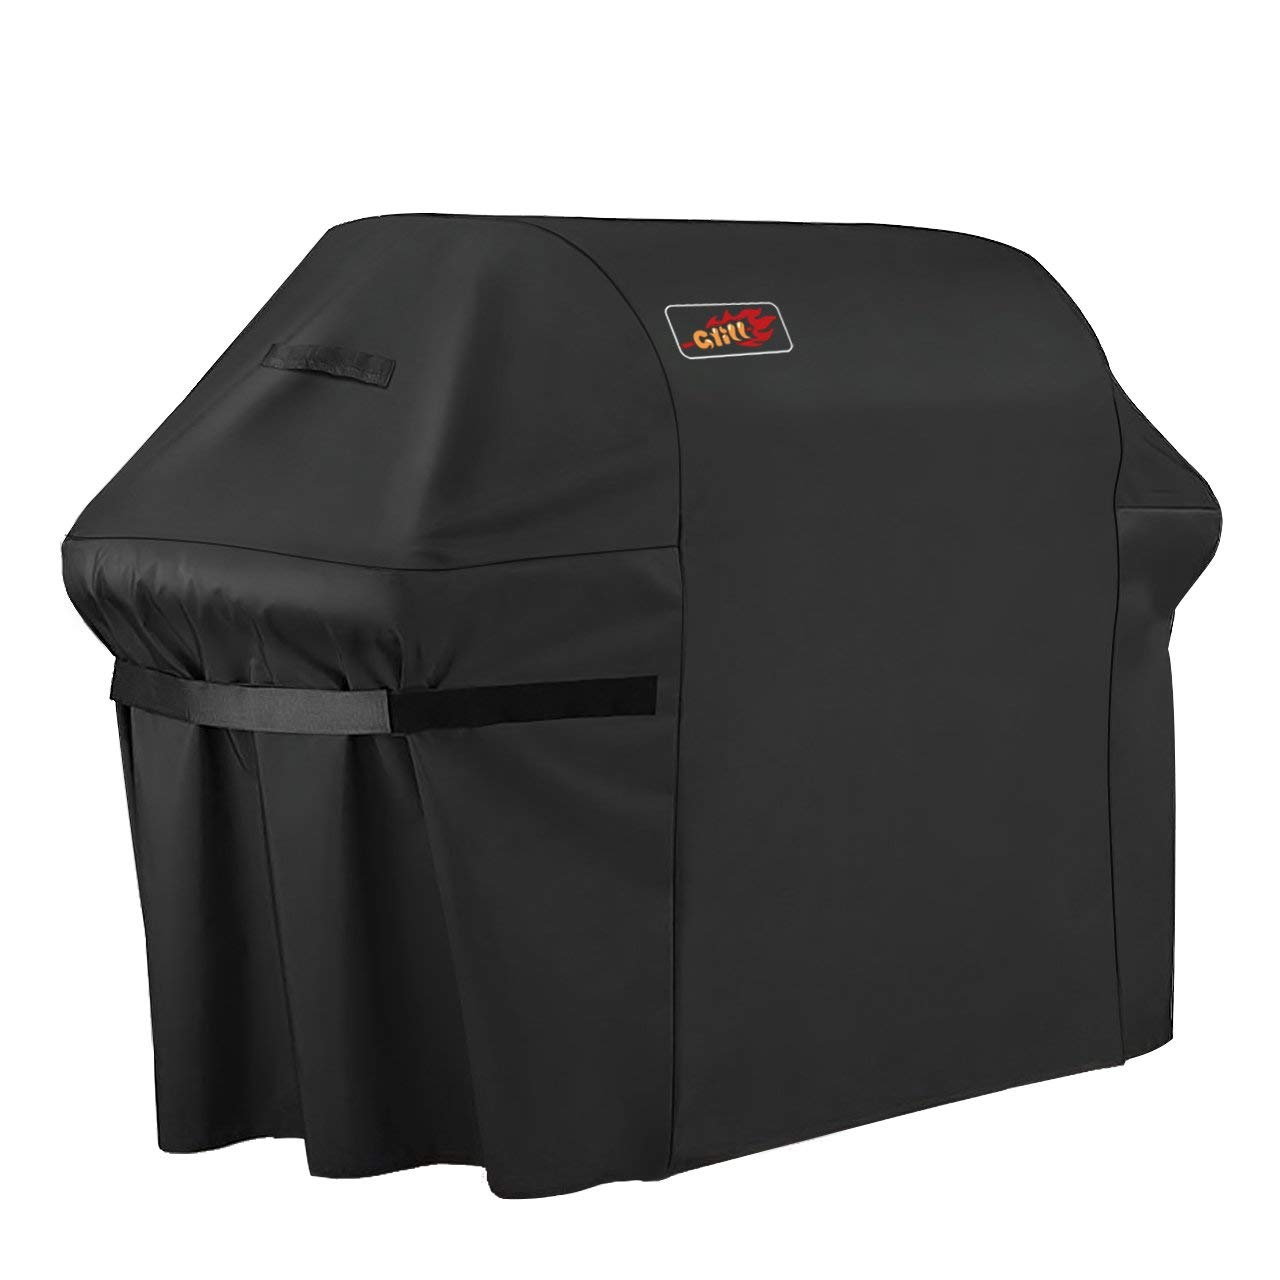 VicTsing Grill Cover, 64-Inch Waterproof Heavy Duty Gas BBQ Grill Cover for Weber, Holland, JennAir, Brinkmann and Char Broil, Black product image